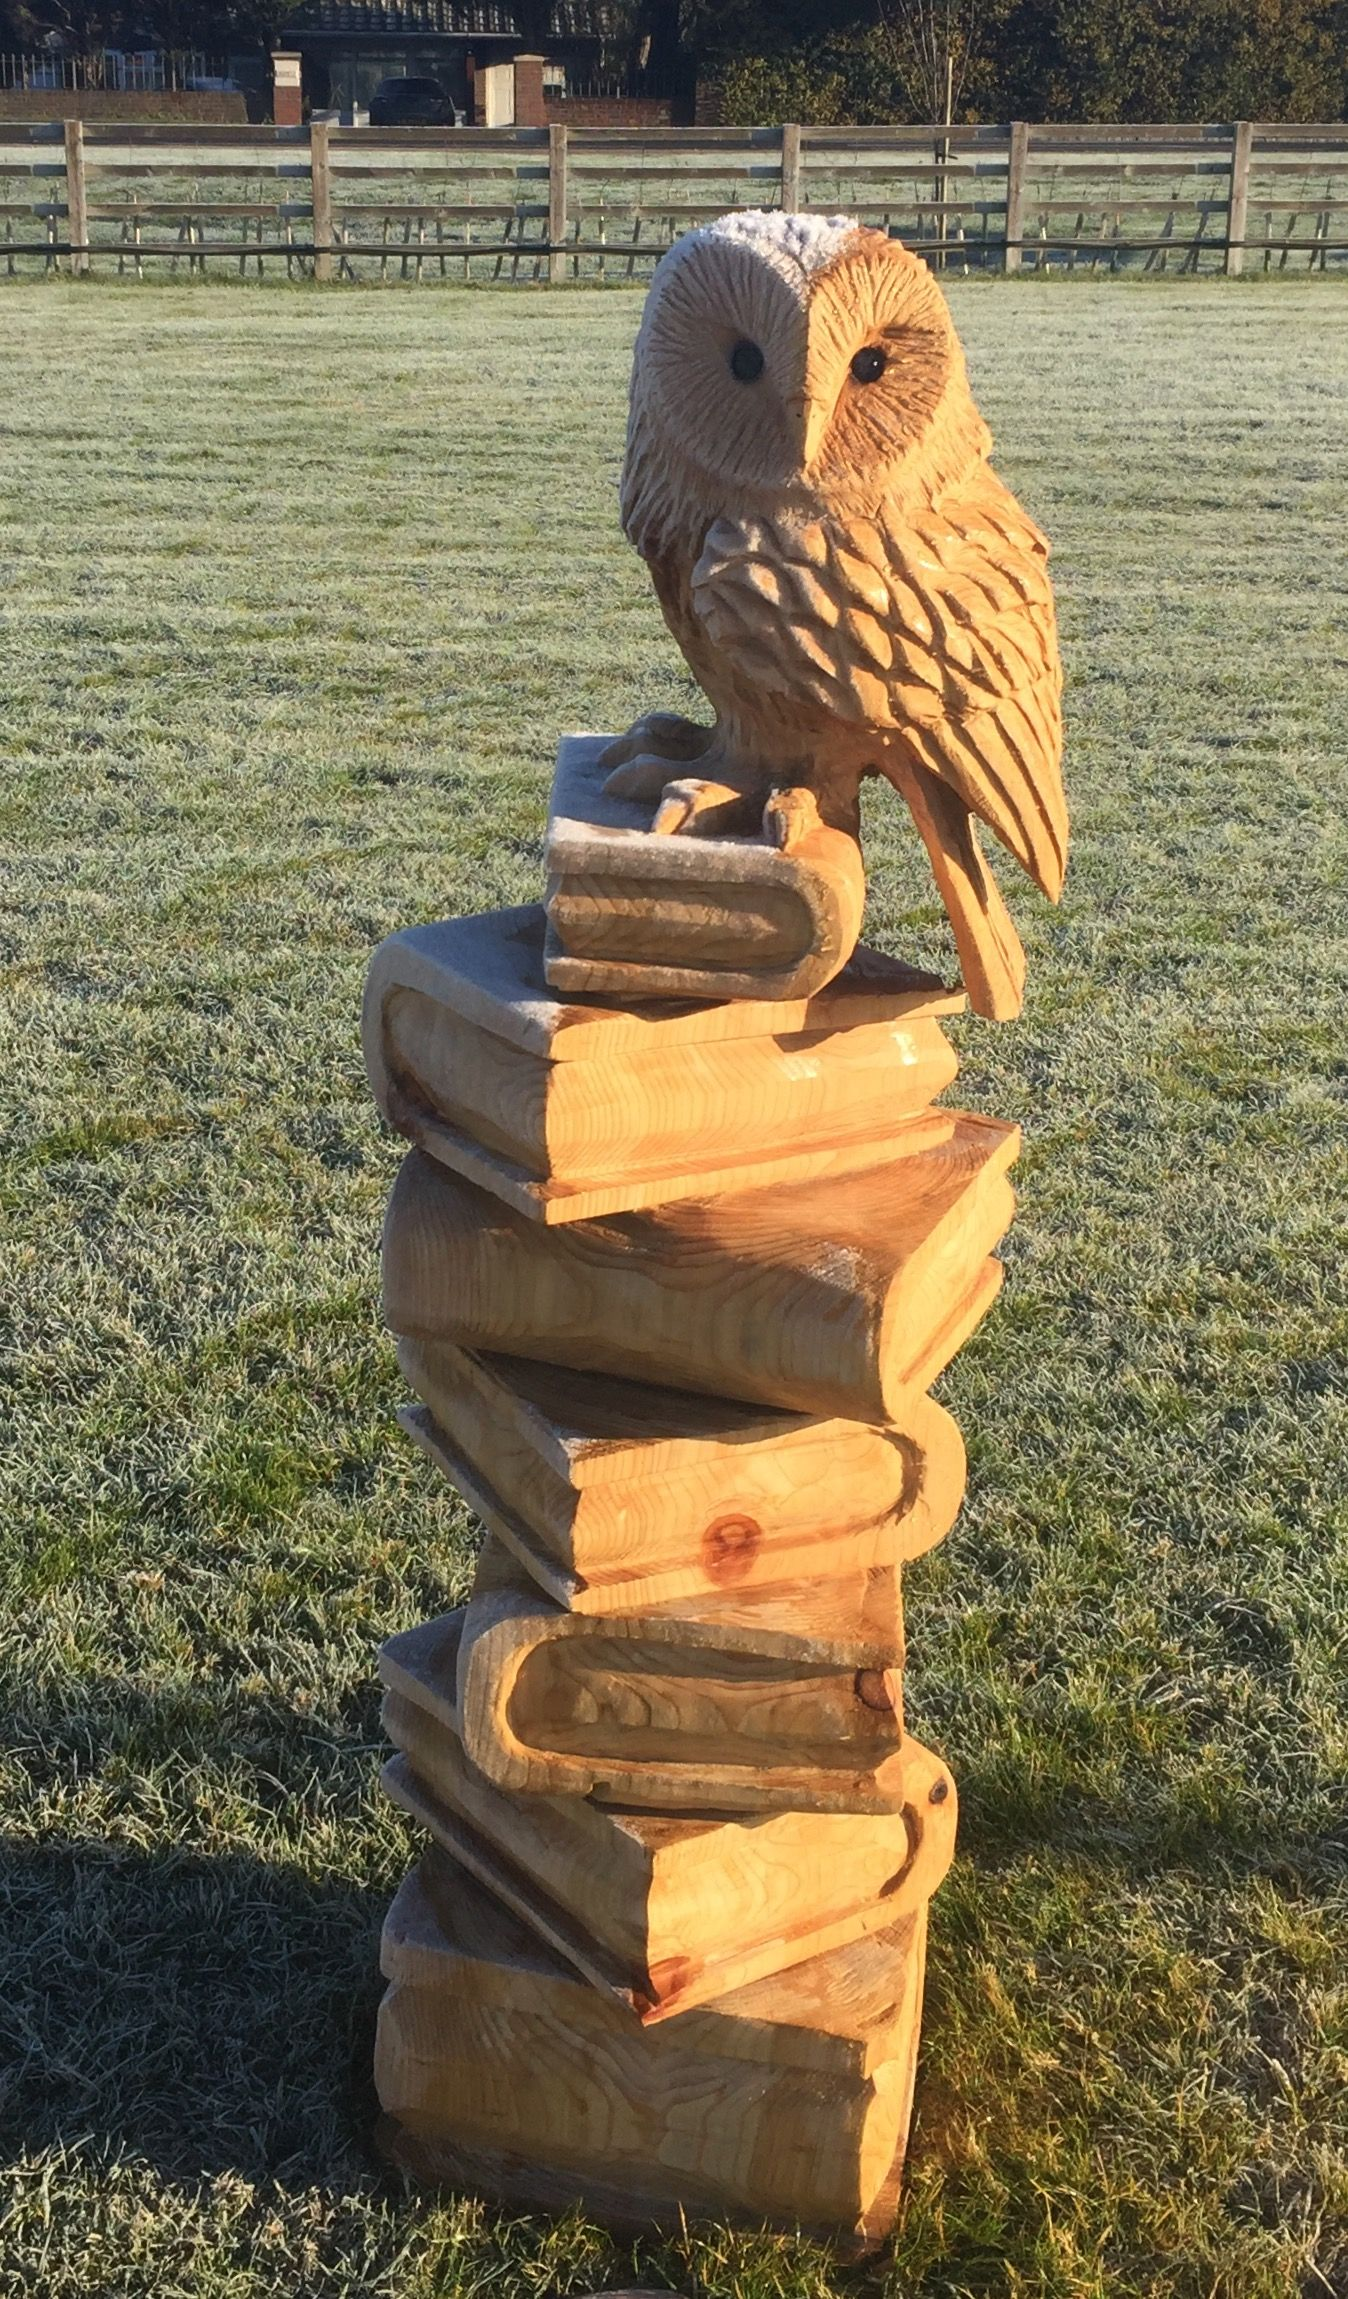 Books chainsaw carving rob beckinsale flickr